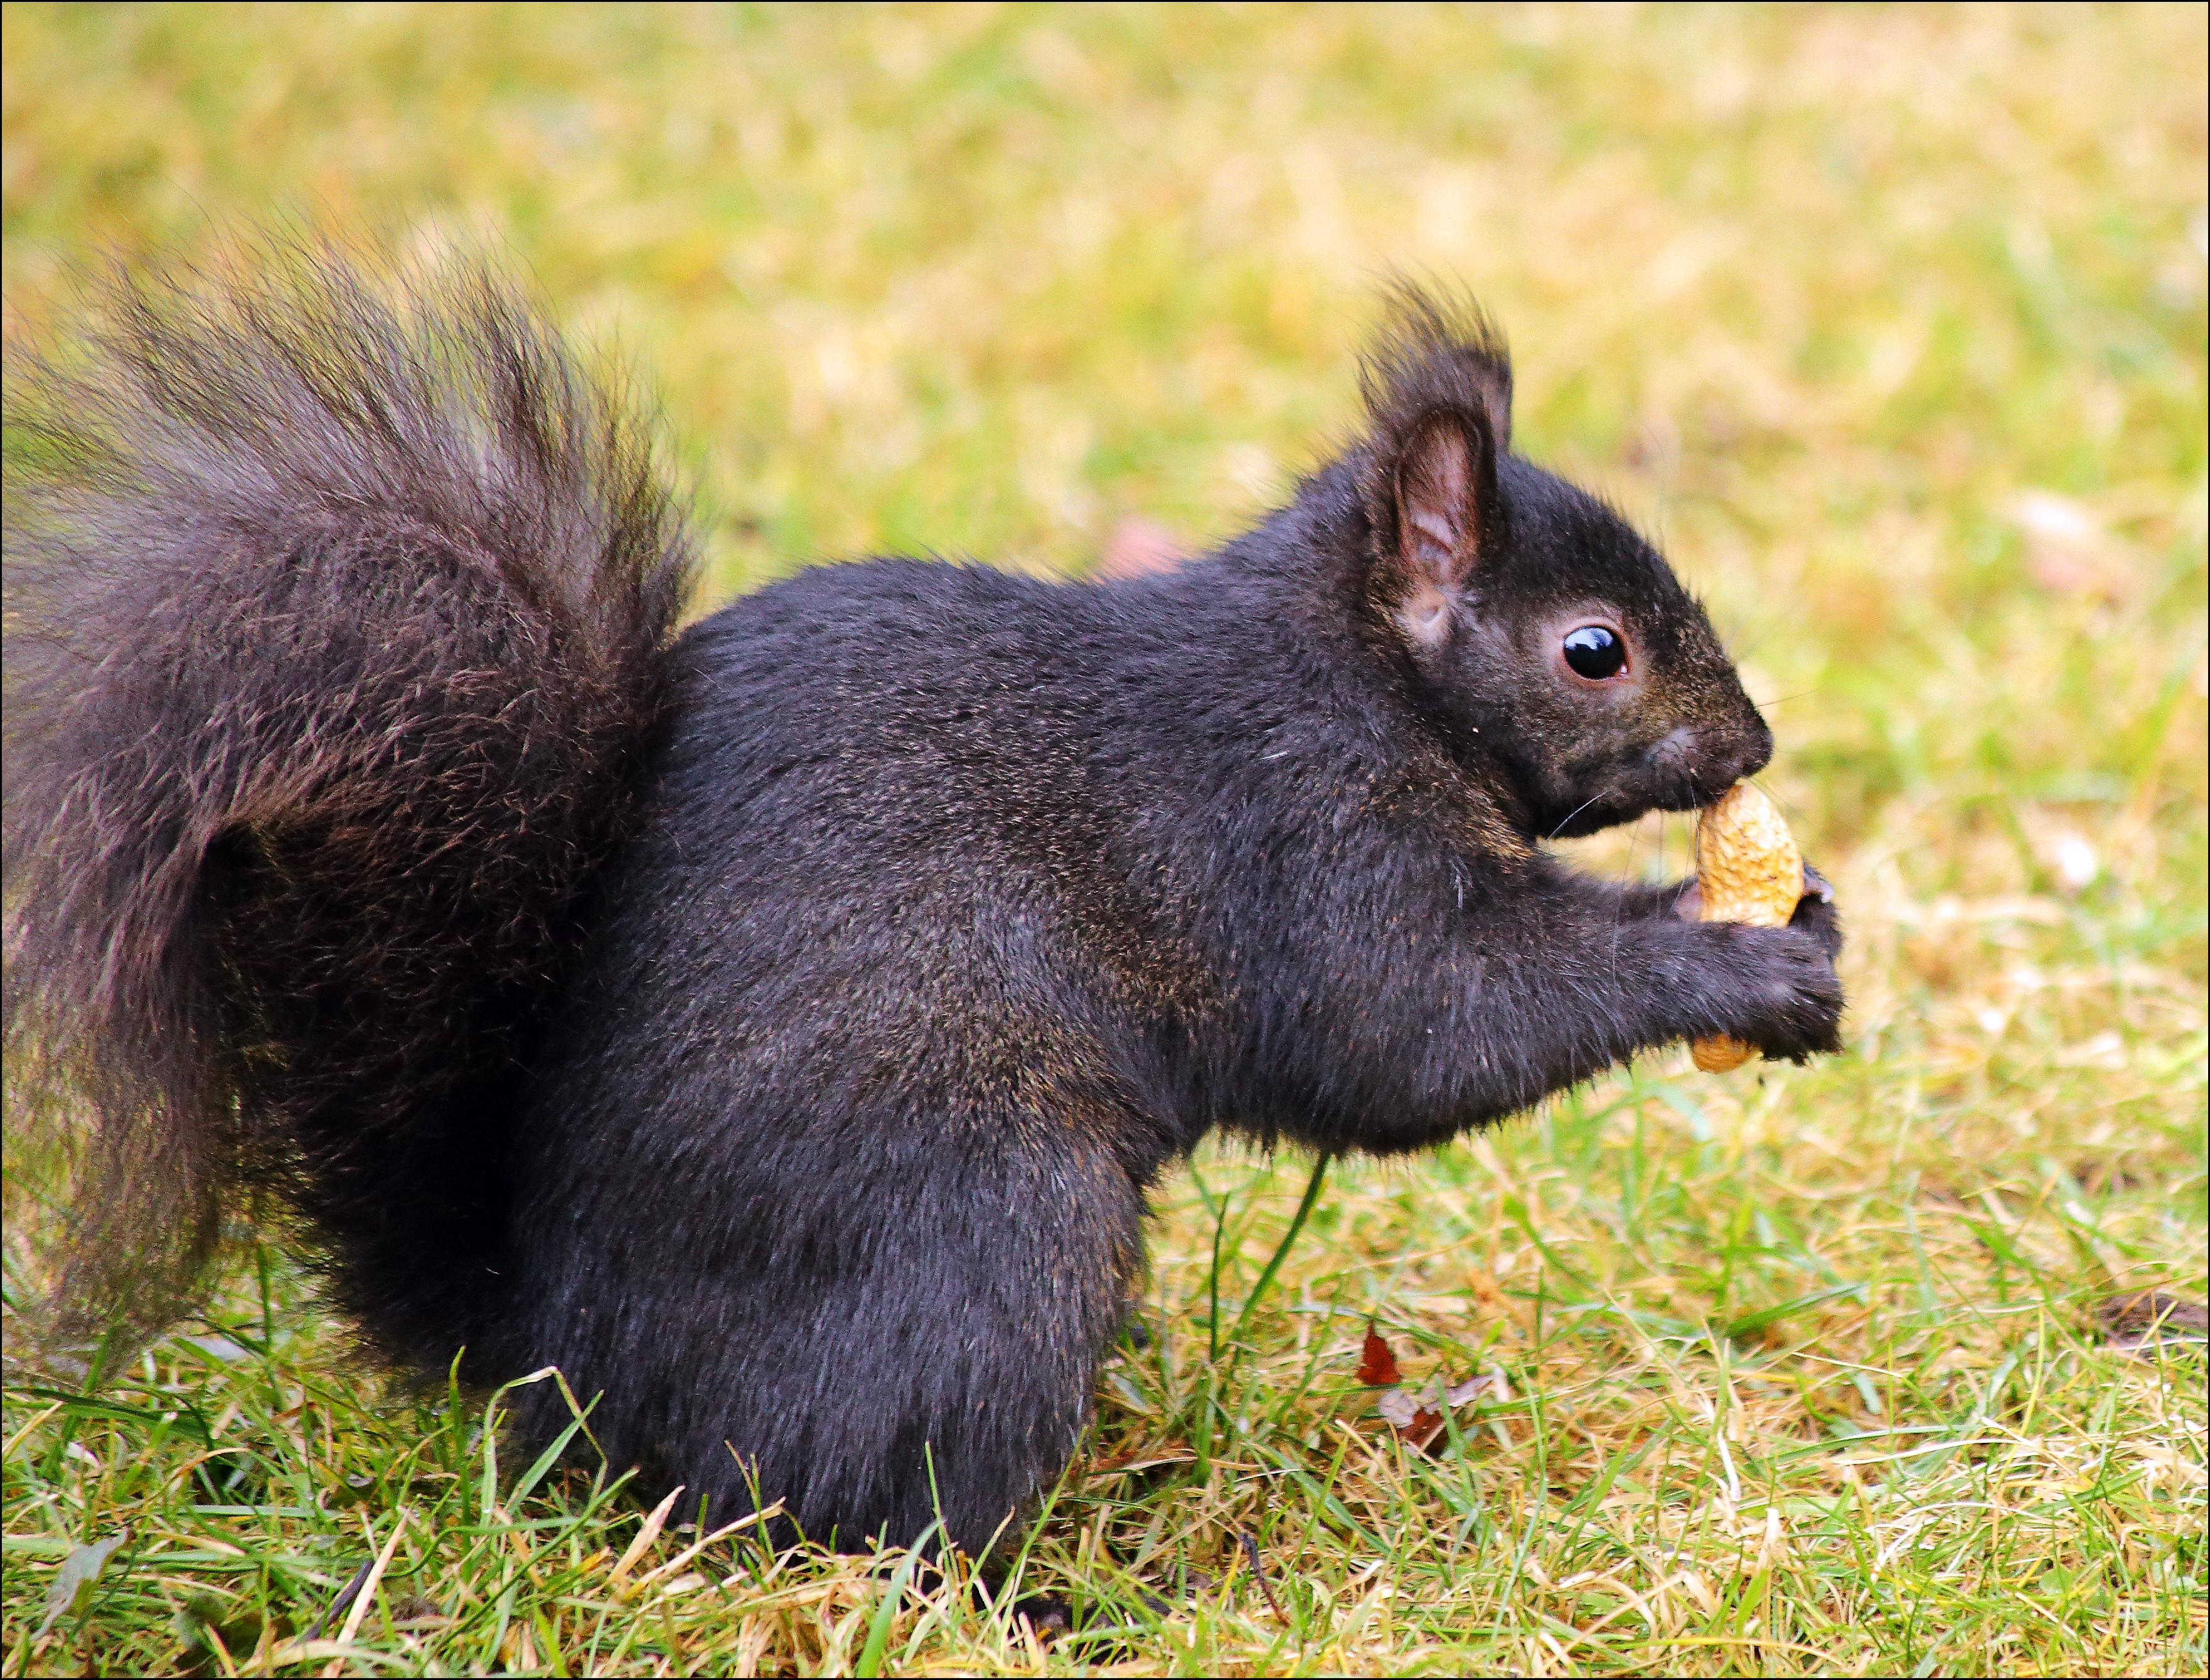 If It Looks Like A Peanut And Smells Like A Peanut. canon, squirrel, smell, peanut, 6d. buy photo